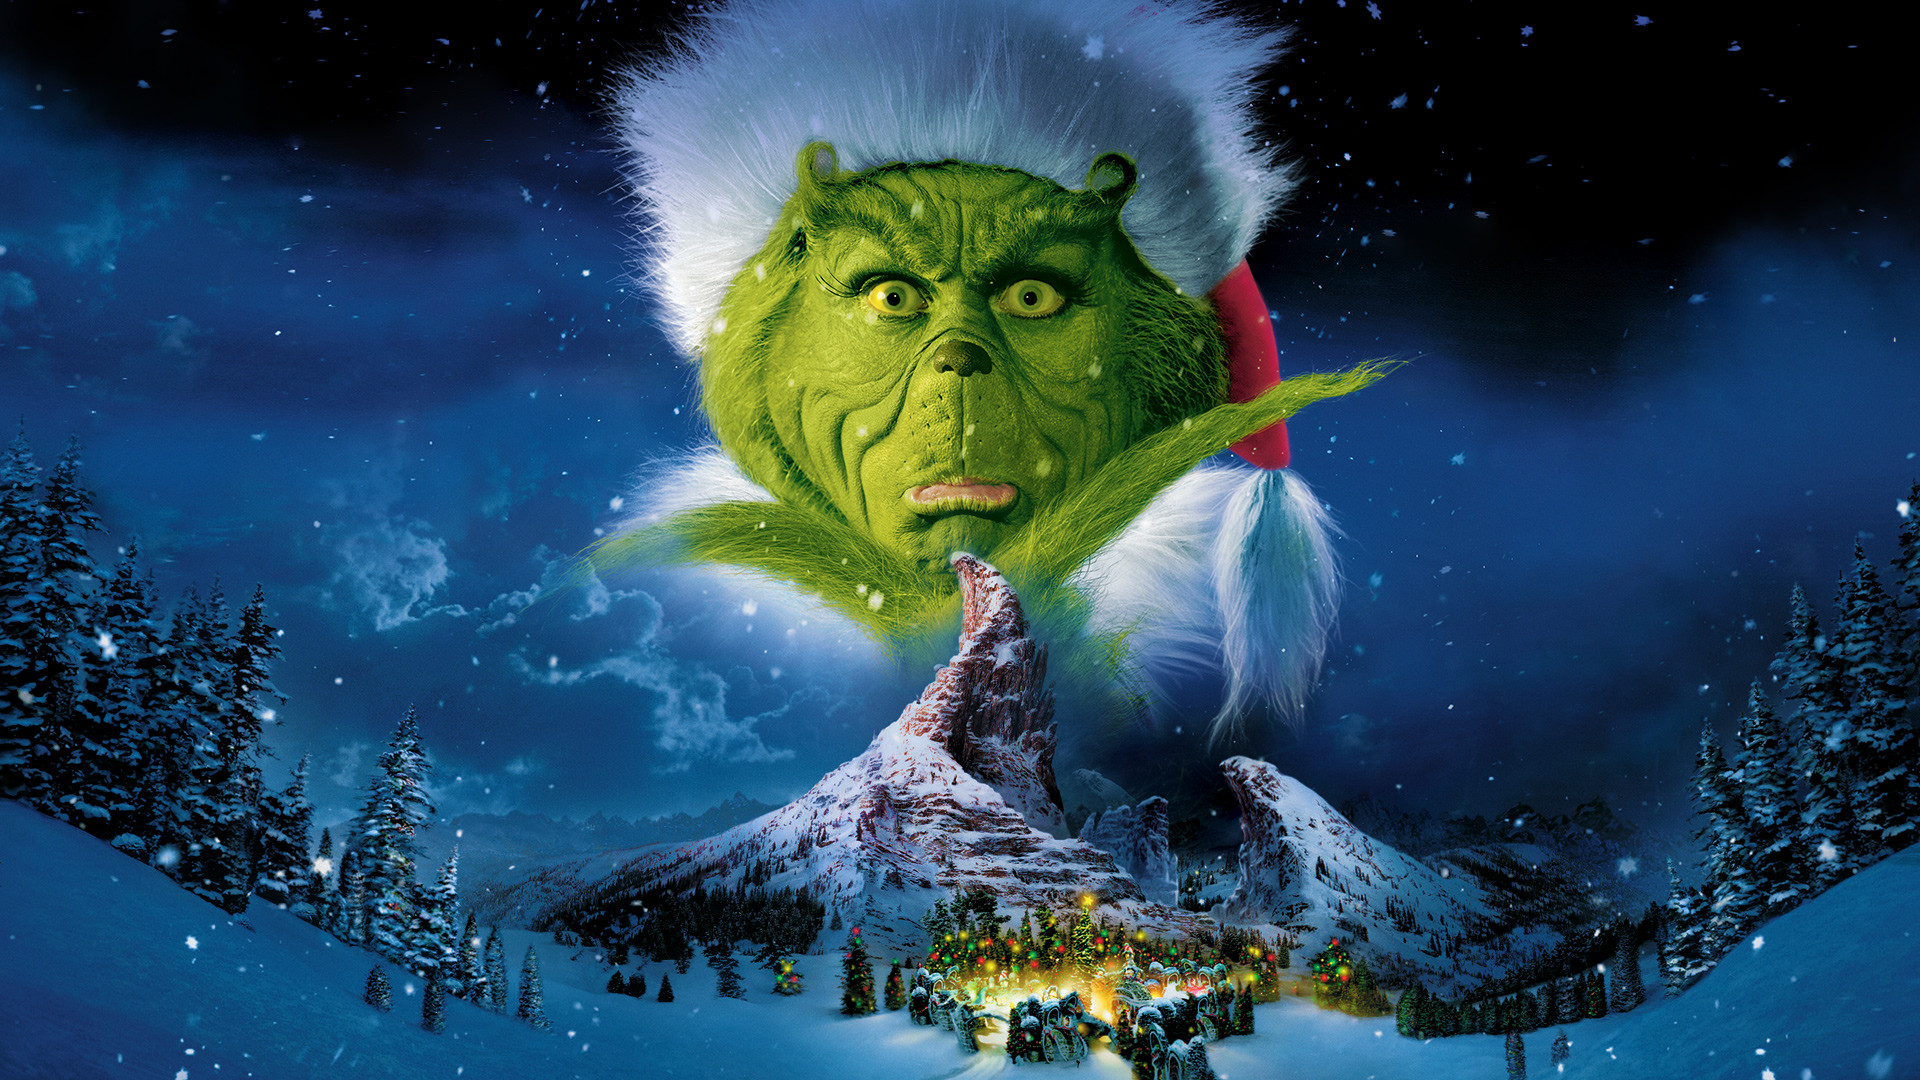 Grinch Wallpaper (64+ images)